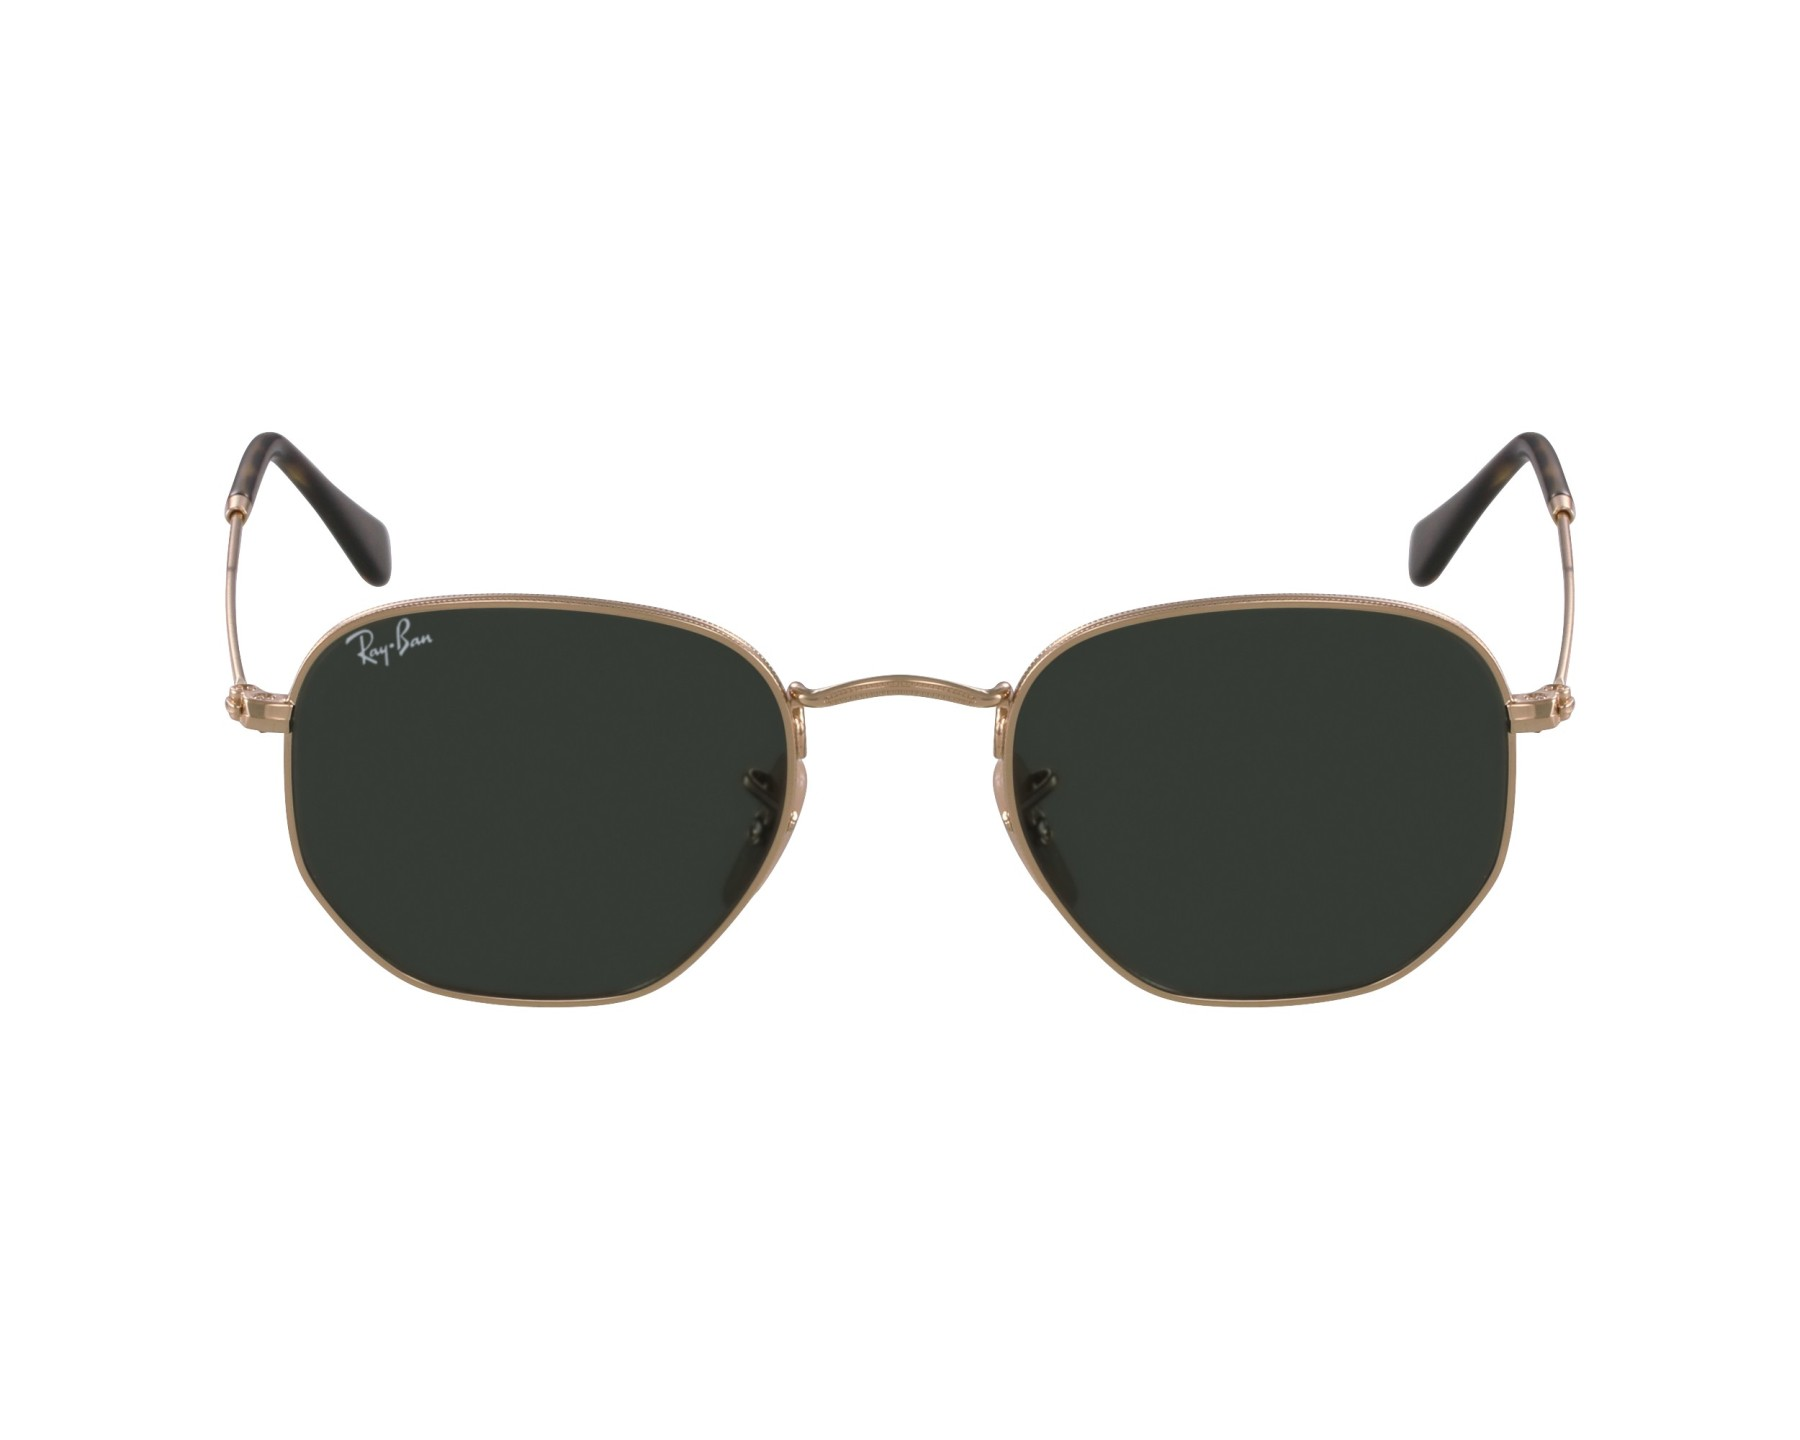 Sunglasses Ray-Ban RB-3548-N 001 48-21 Gold profile view 36429a122c